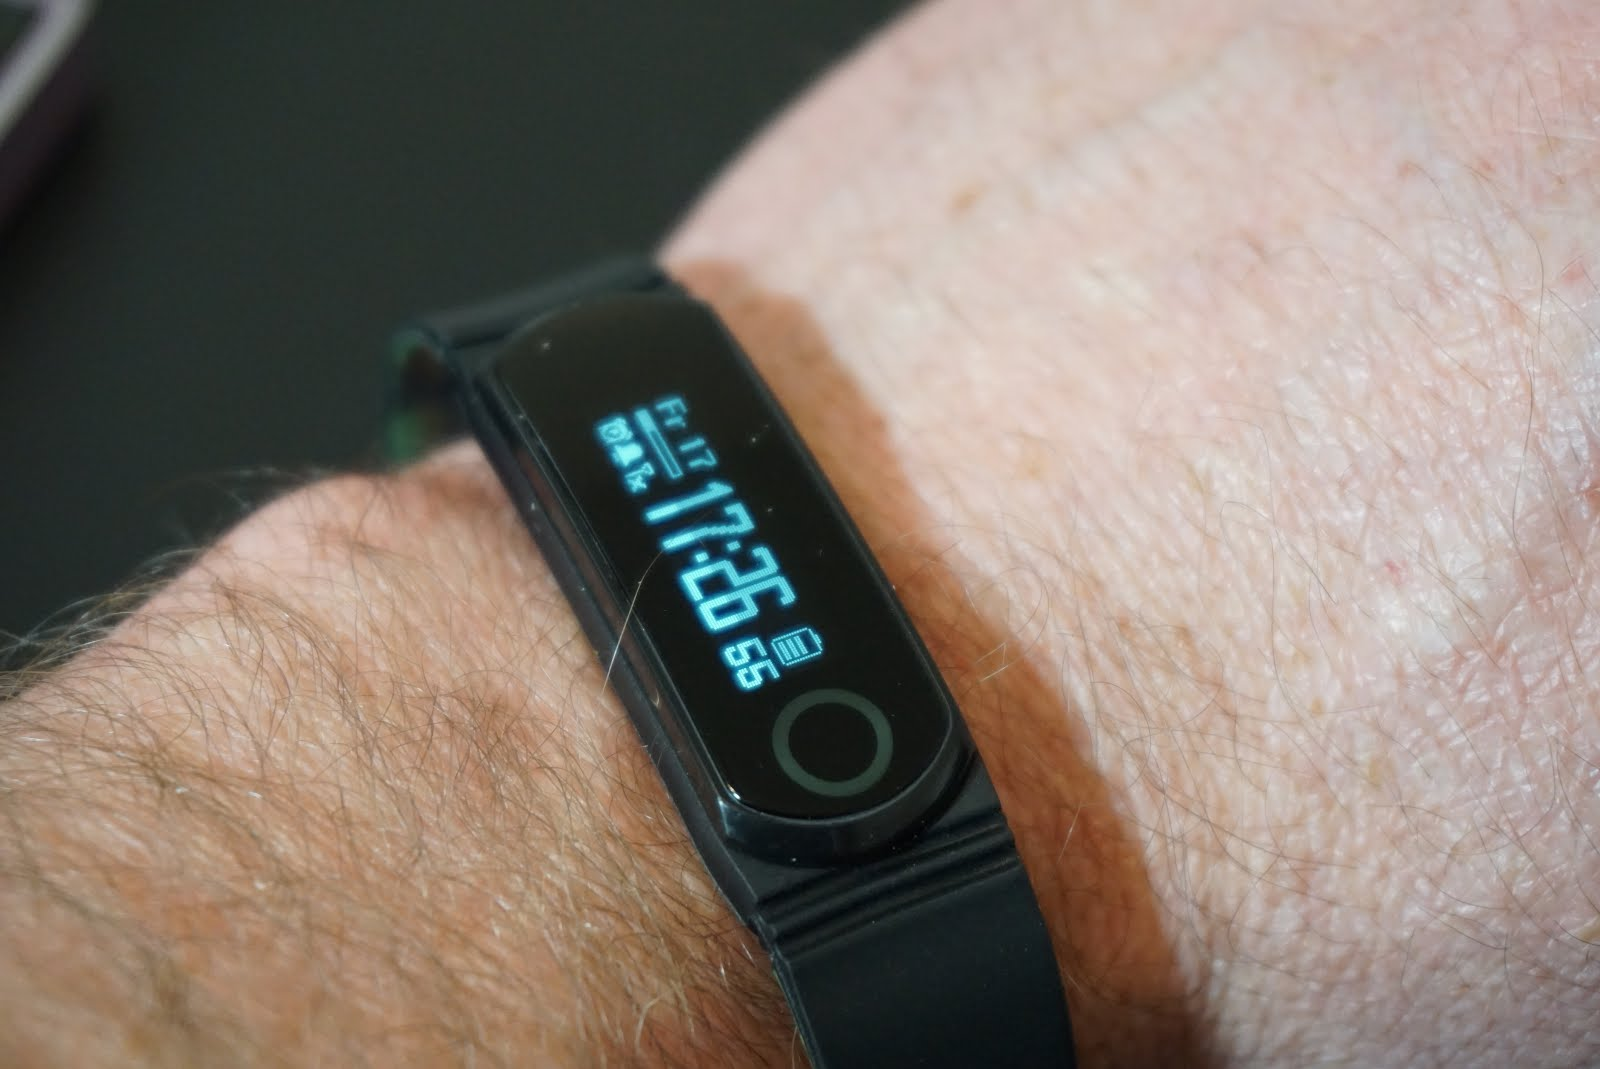 Best fitness tracker the top 10 activity bands on the planet. Read the Xiaomi Mi Band 3 review. Looking for a more affordable fitness band?